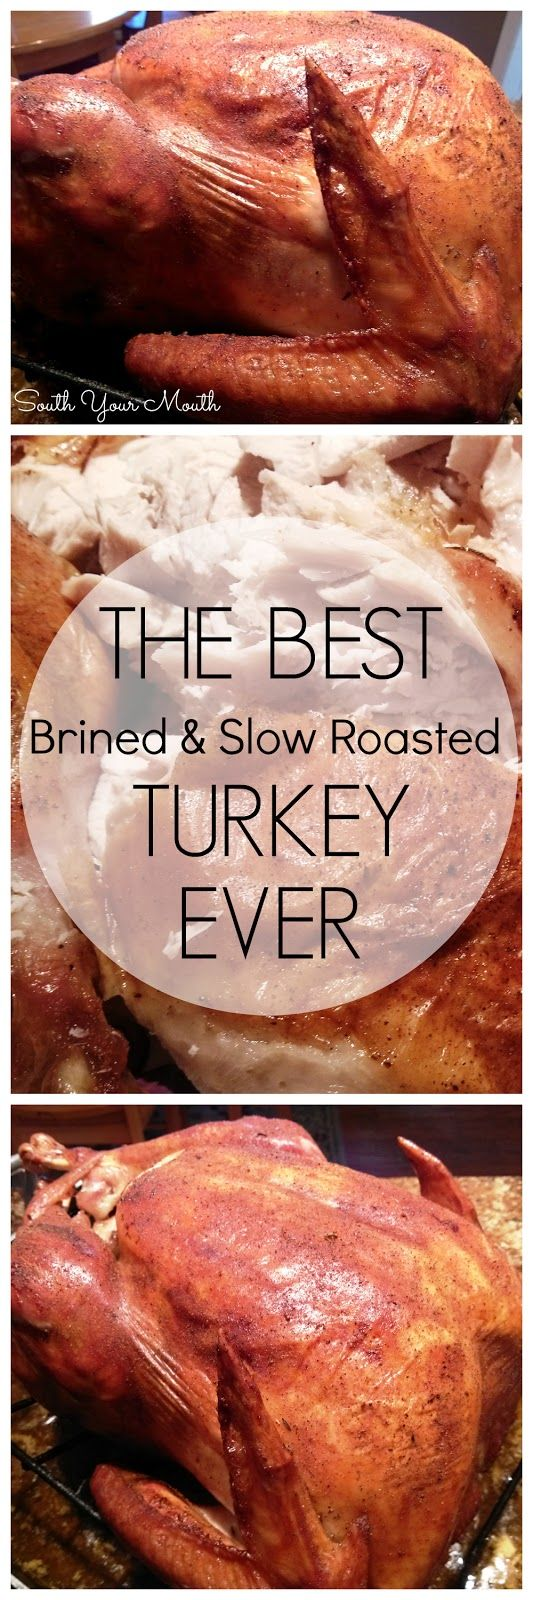 South Your Mouth: Jive Turkey - Brined & Herbed Slow-Roasted Turkey with Prefect Turkey Gravy